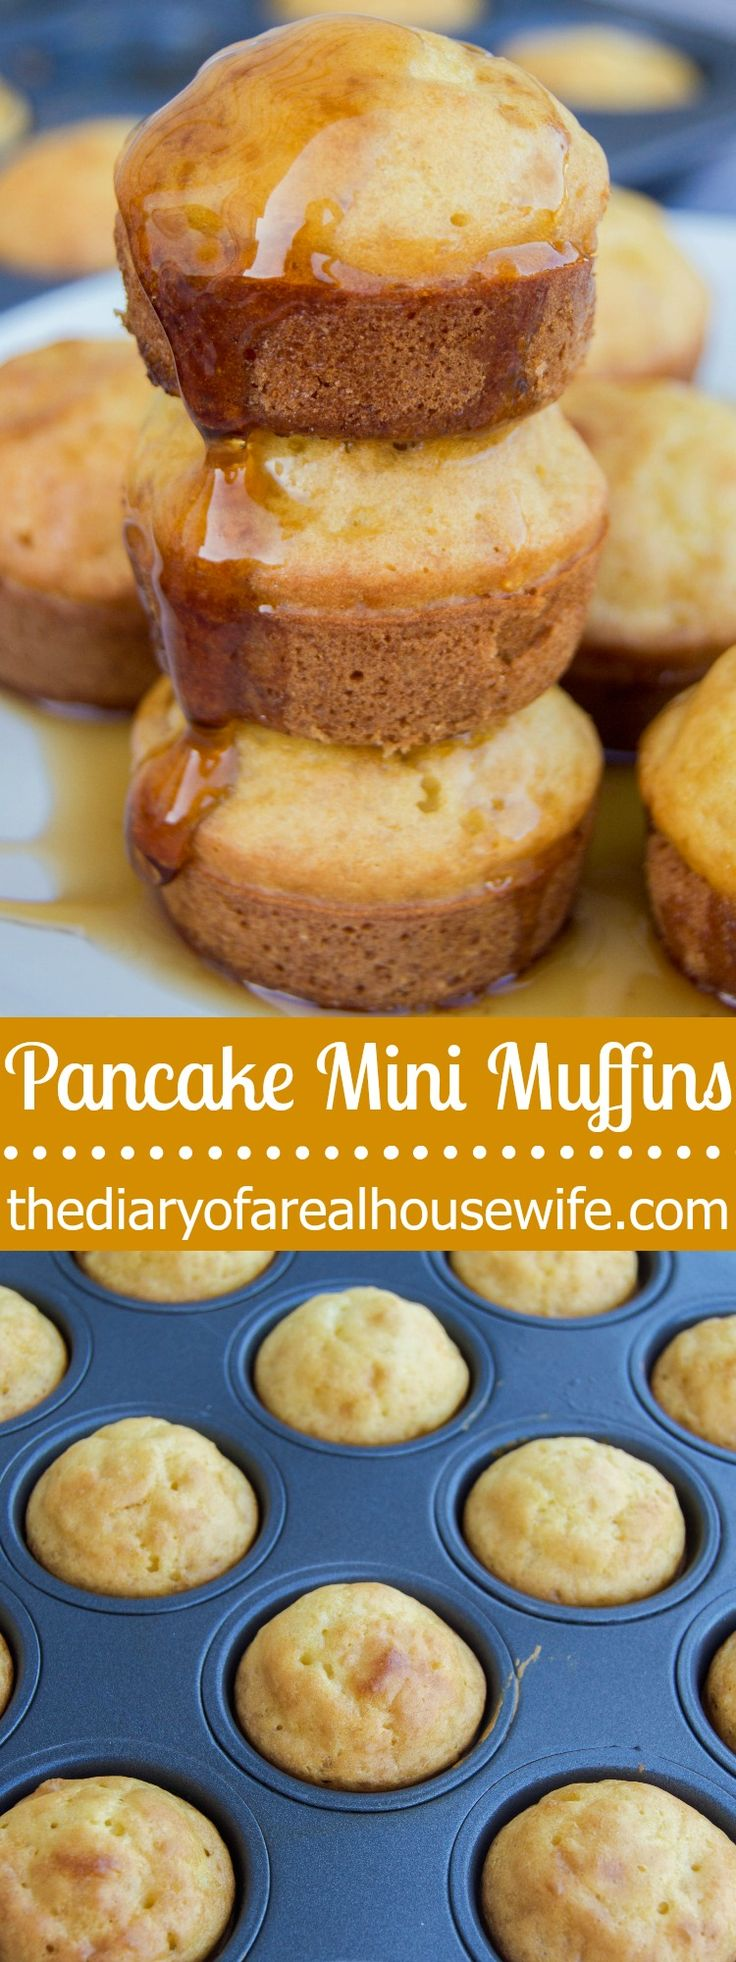 Pancake Mini Muffins. I LOVE this recipe. It's so simple to make and I don't have to stand at the stove top and flip. Just pop them in the oven!